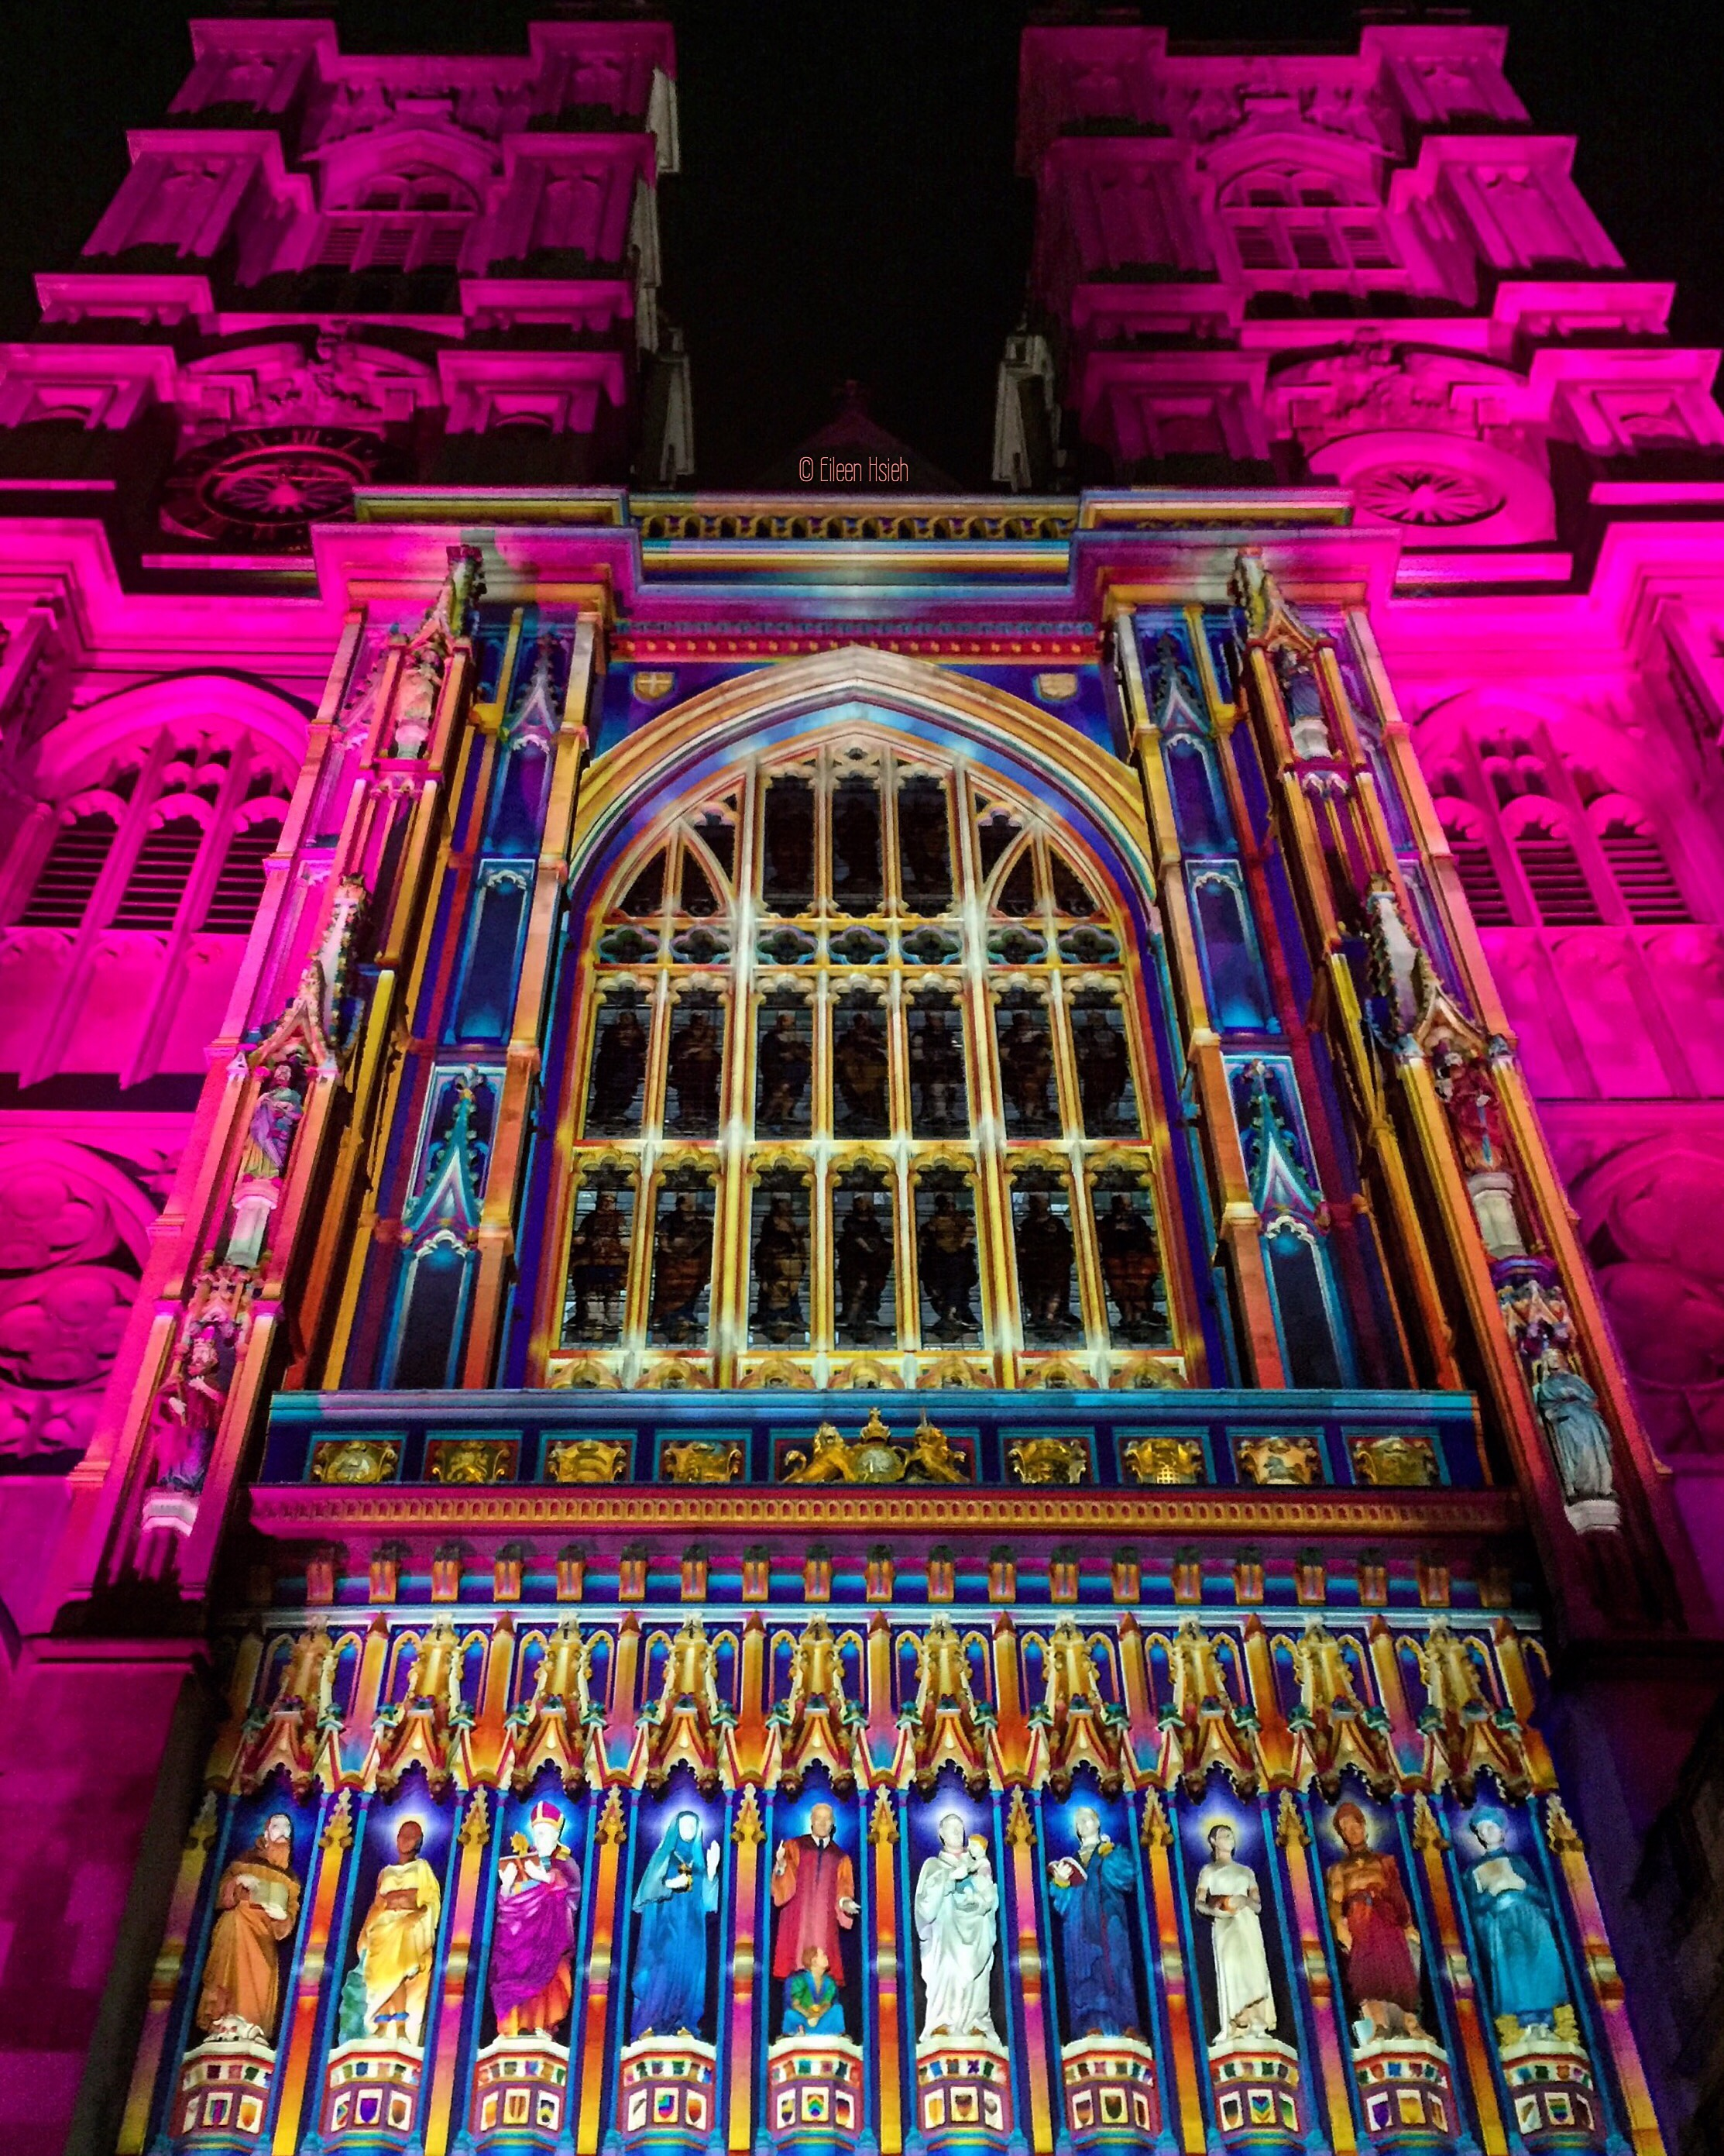 The Light of The Spirit by Patrice Warrener - Westminster Abbey